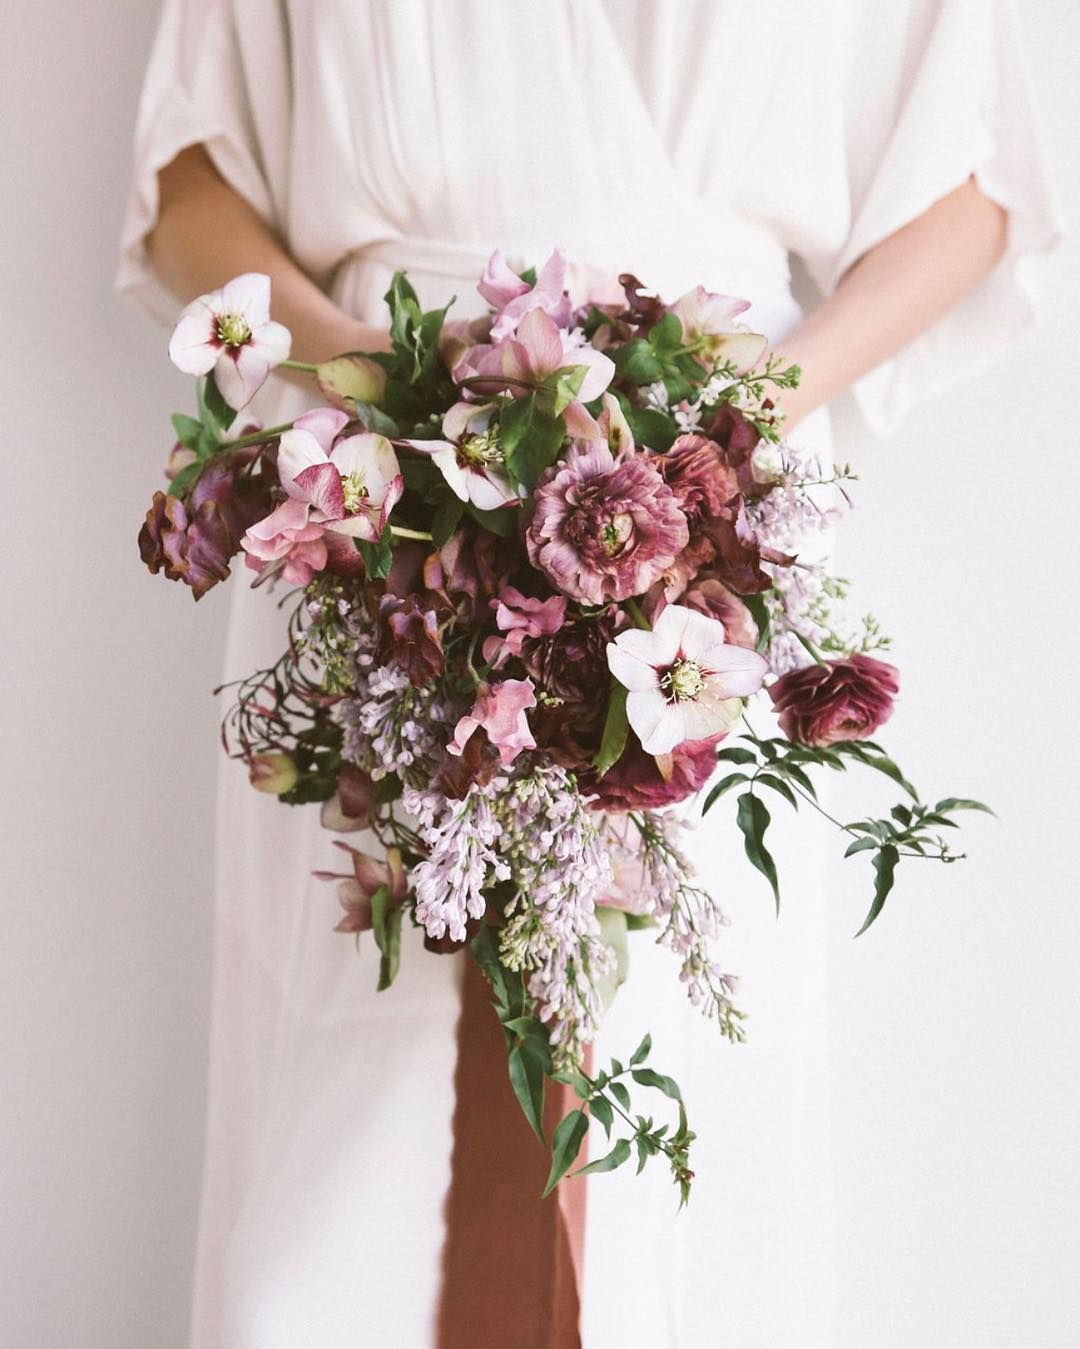 Image may contain flower and plant Bridal bouquet